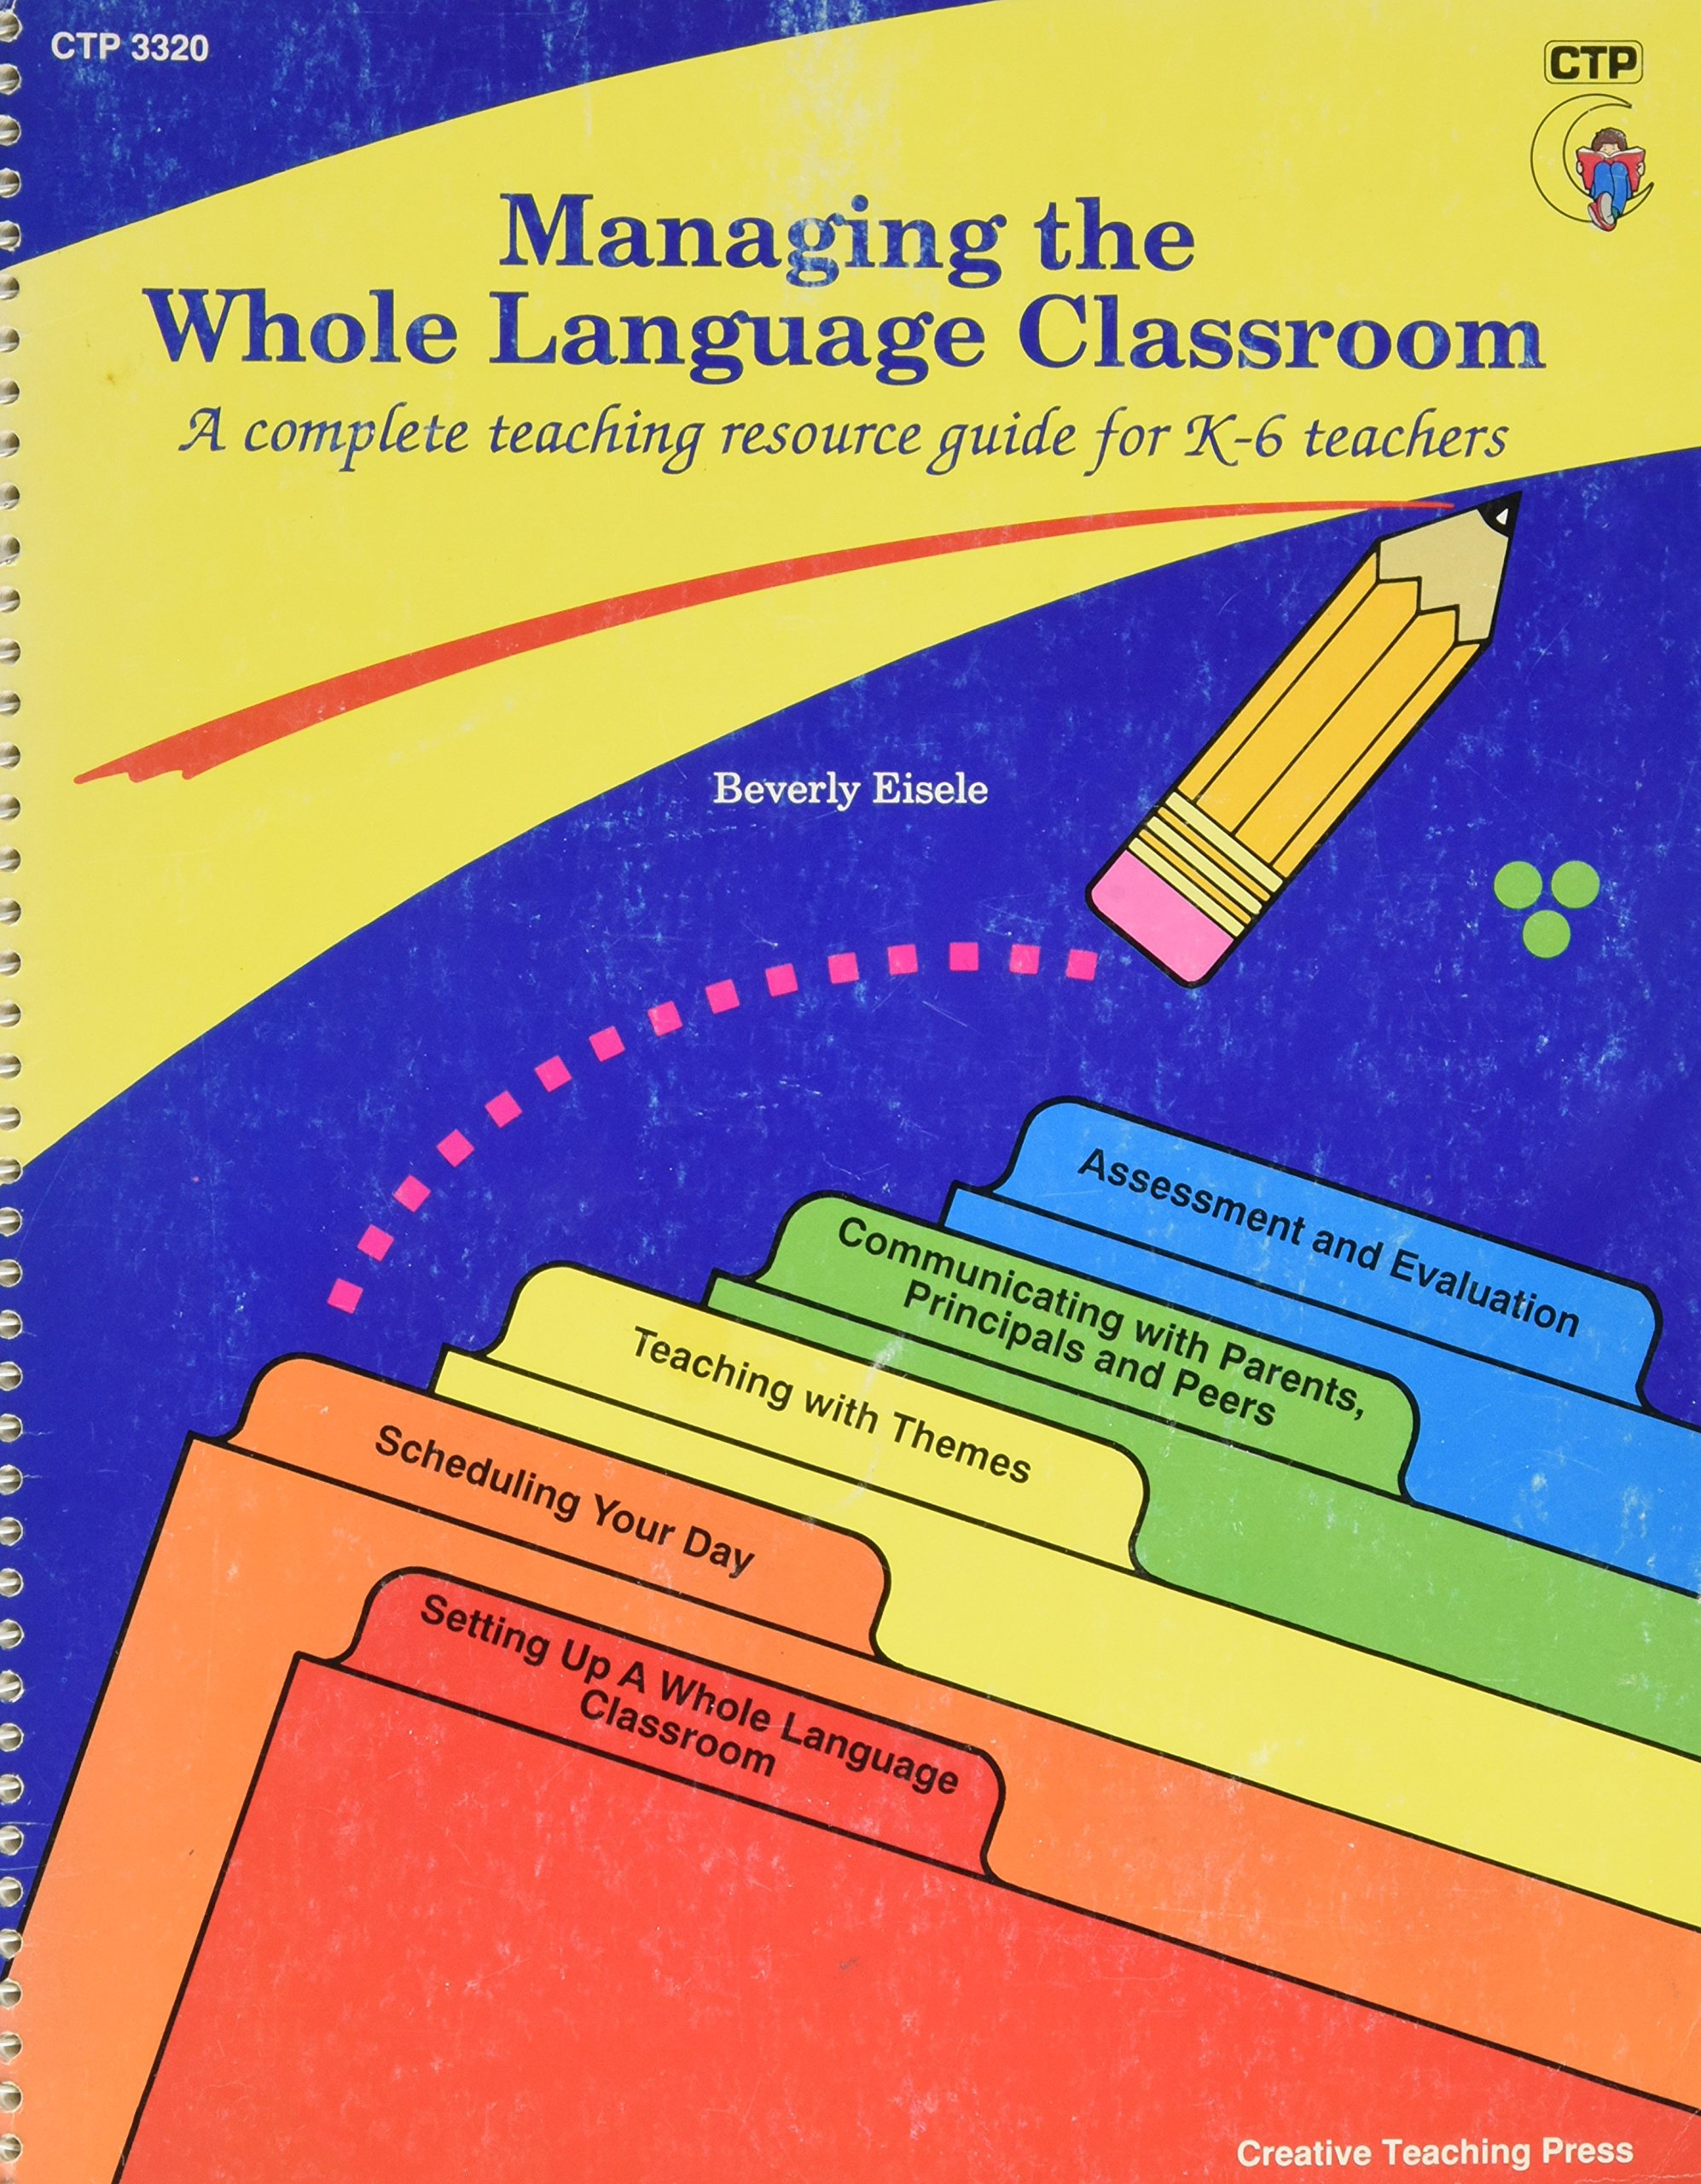 Managing the Whole Language Classroom – A Complete Teaching Resource Guide for K-6 Teachers by Creative Teaching Press